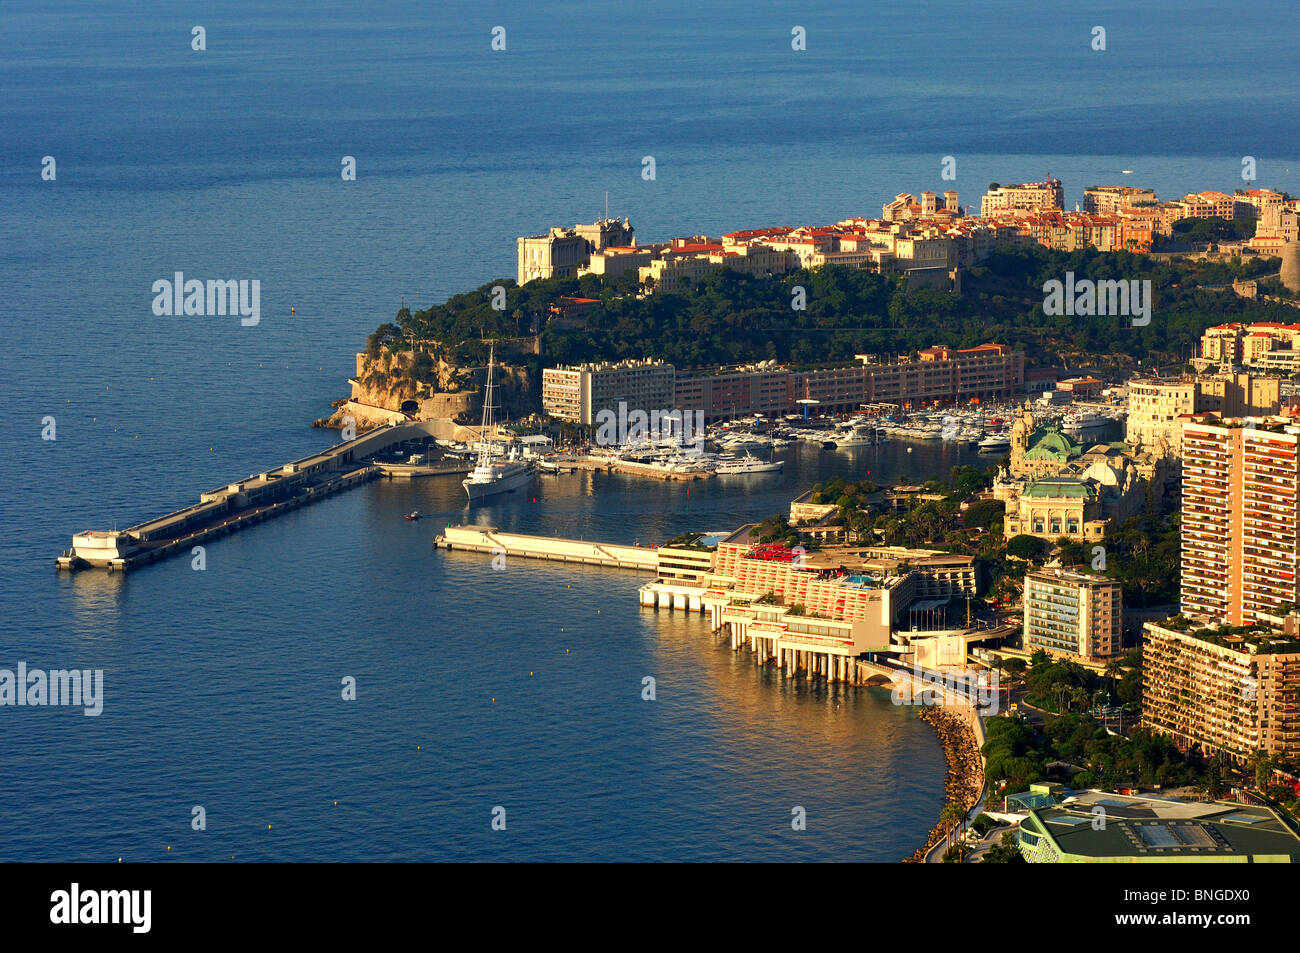 Entrance to the Port of Hercule, Monte Carlo, Monaco - Stock Image